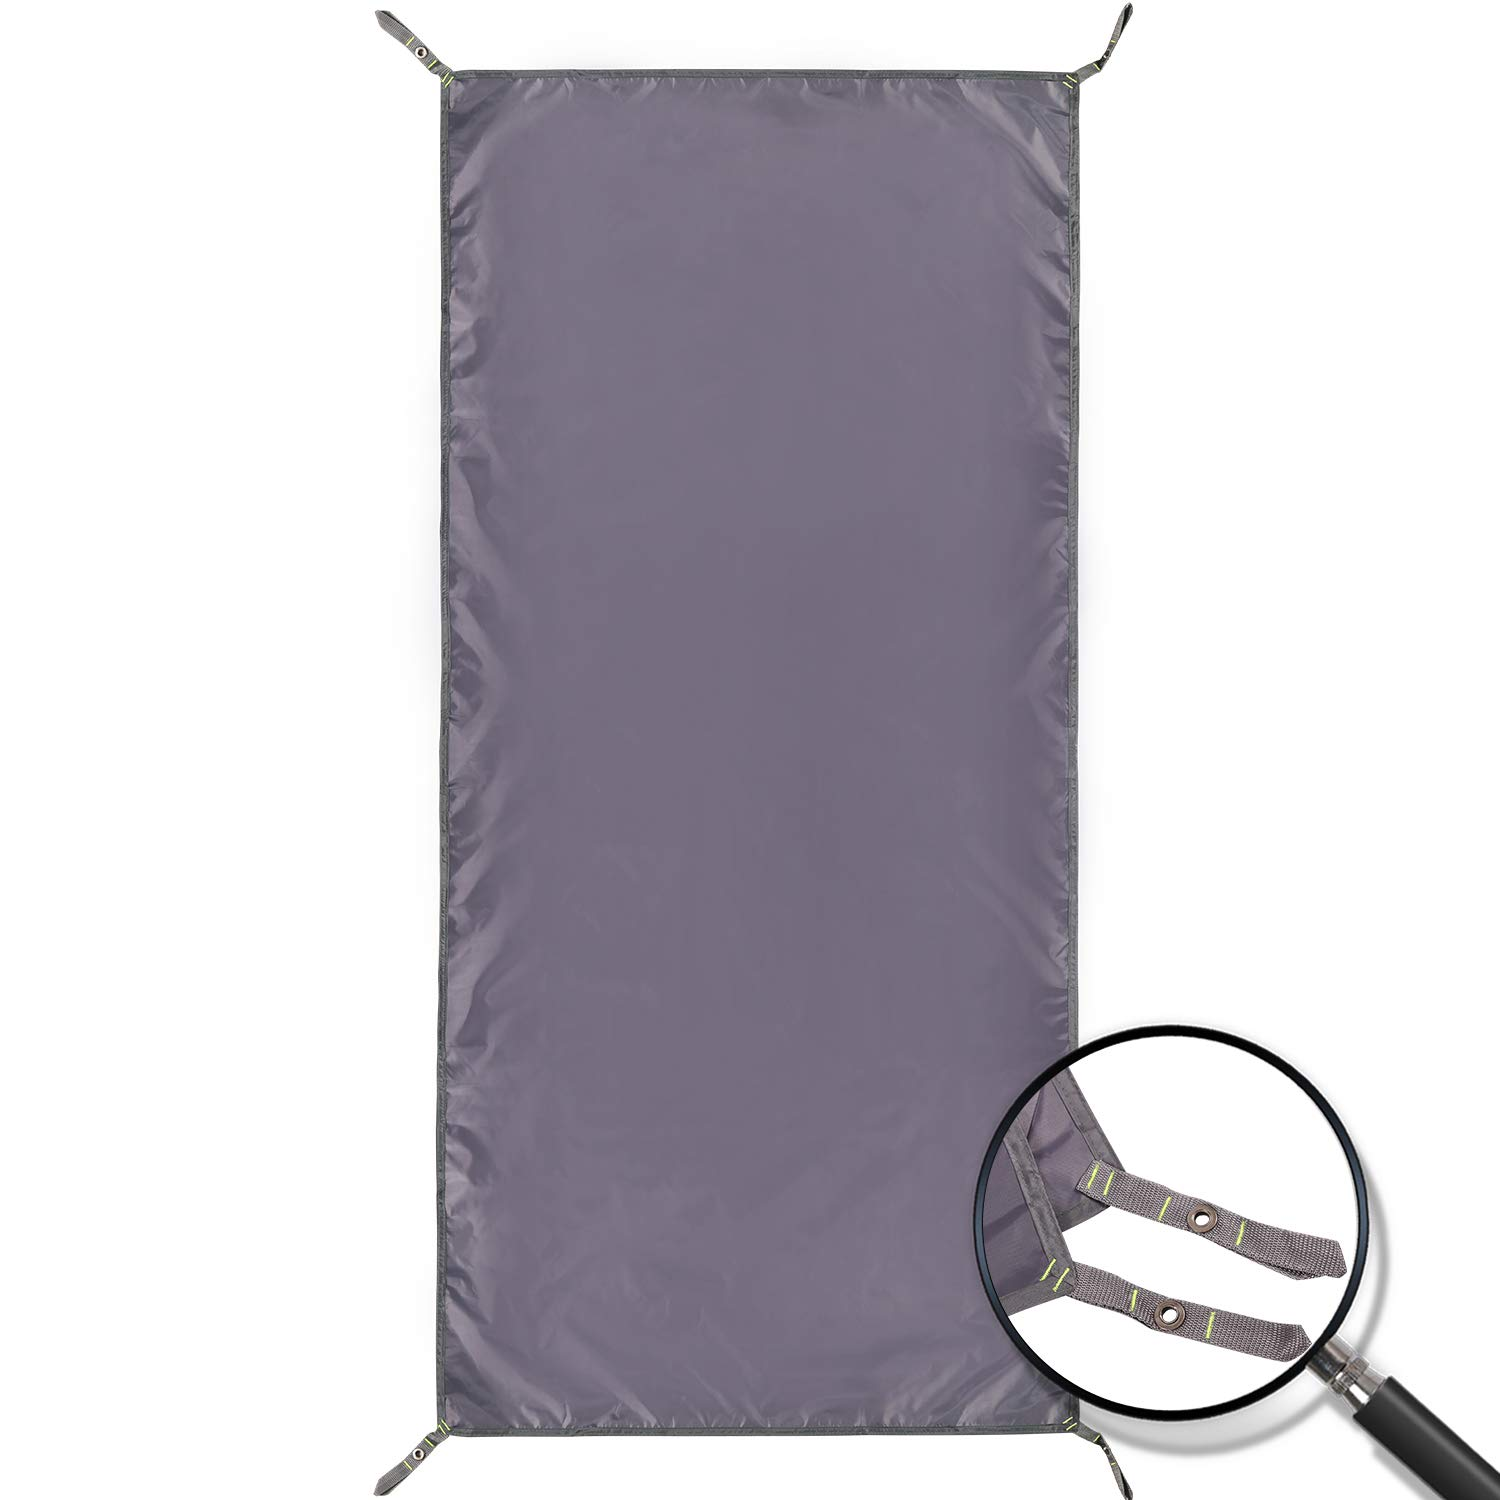 REDCAMP Waterproof Camping Tent Tarp - 36''x83'', 4 in 1 Multifunctional Tent Footprint for Camping, Hiking and Survival Gear, Lightweight and Compact by REDCAMP